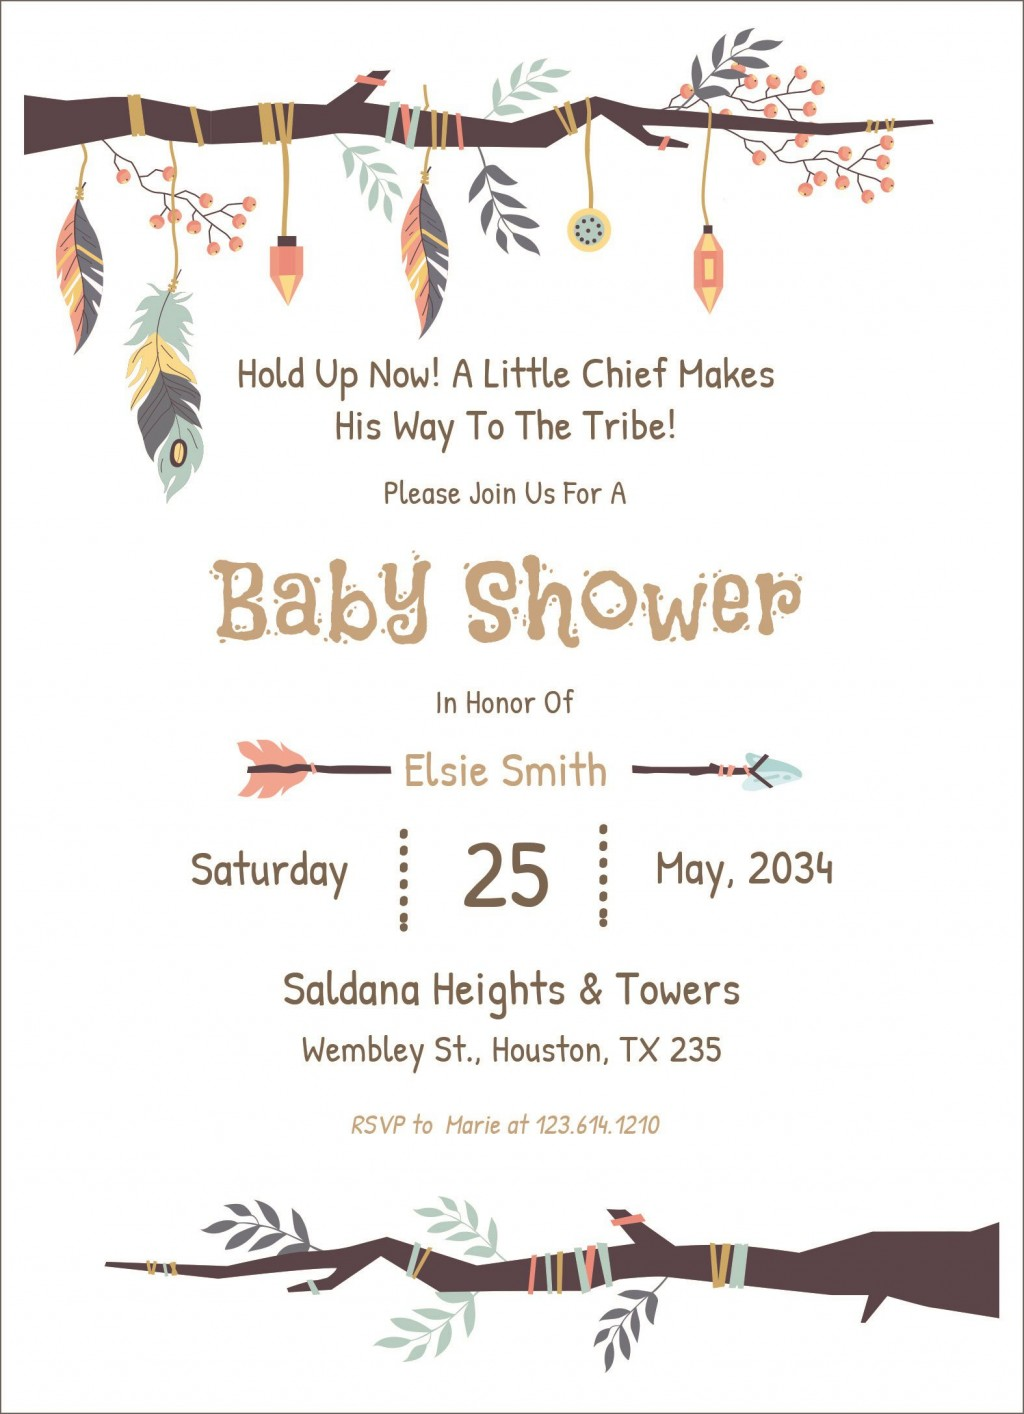 003 Staggering Baby Shower Announcement Template Picture  Templates Invitation India Indian Free With PhotoLarge